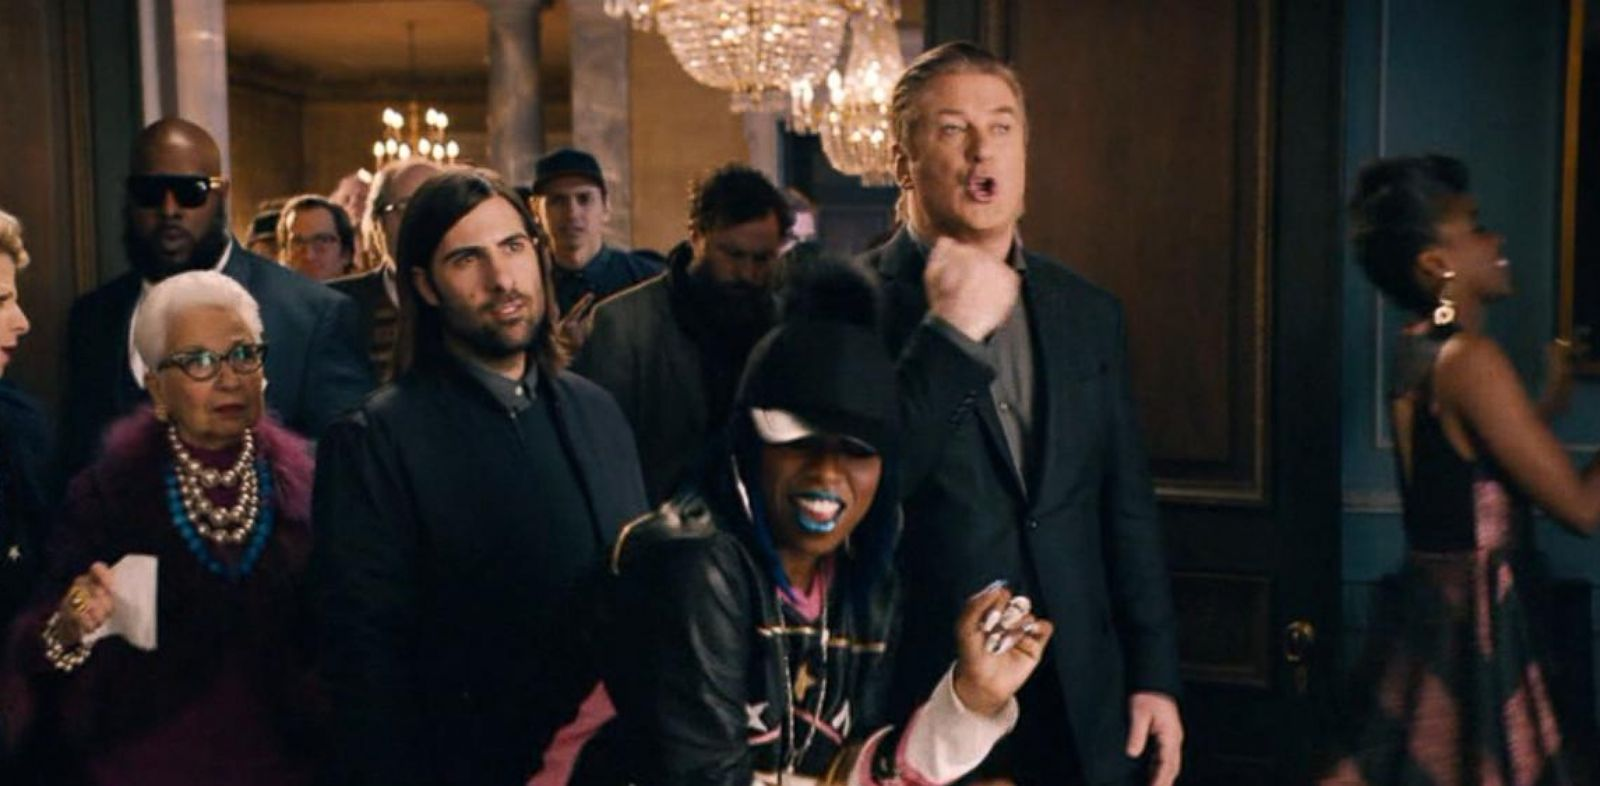 VIDEO: Amazon's first ever Super Bowl commercial stars Alec Baldwin, Dan Marino, Missy Elliot and Jason Schwartzman.